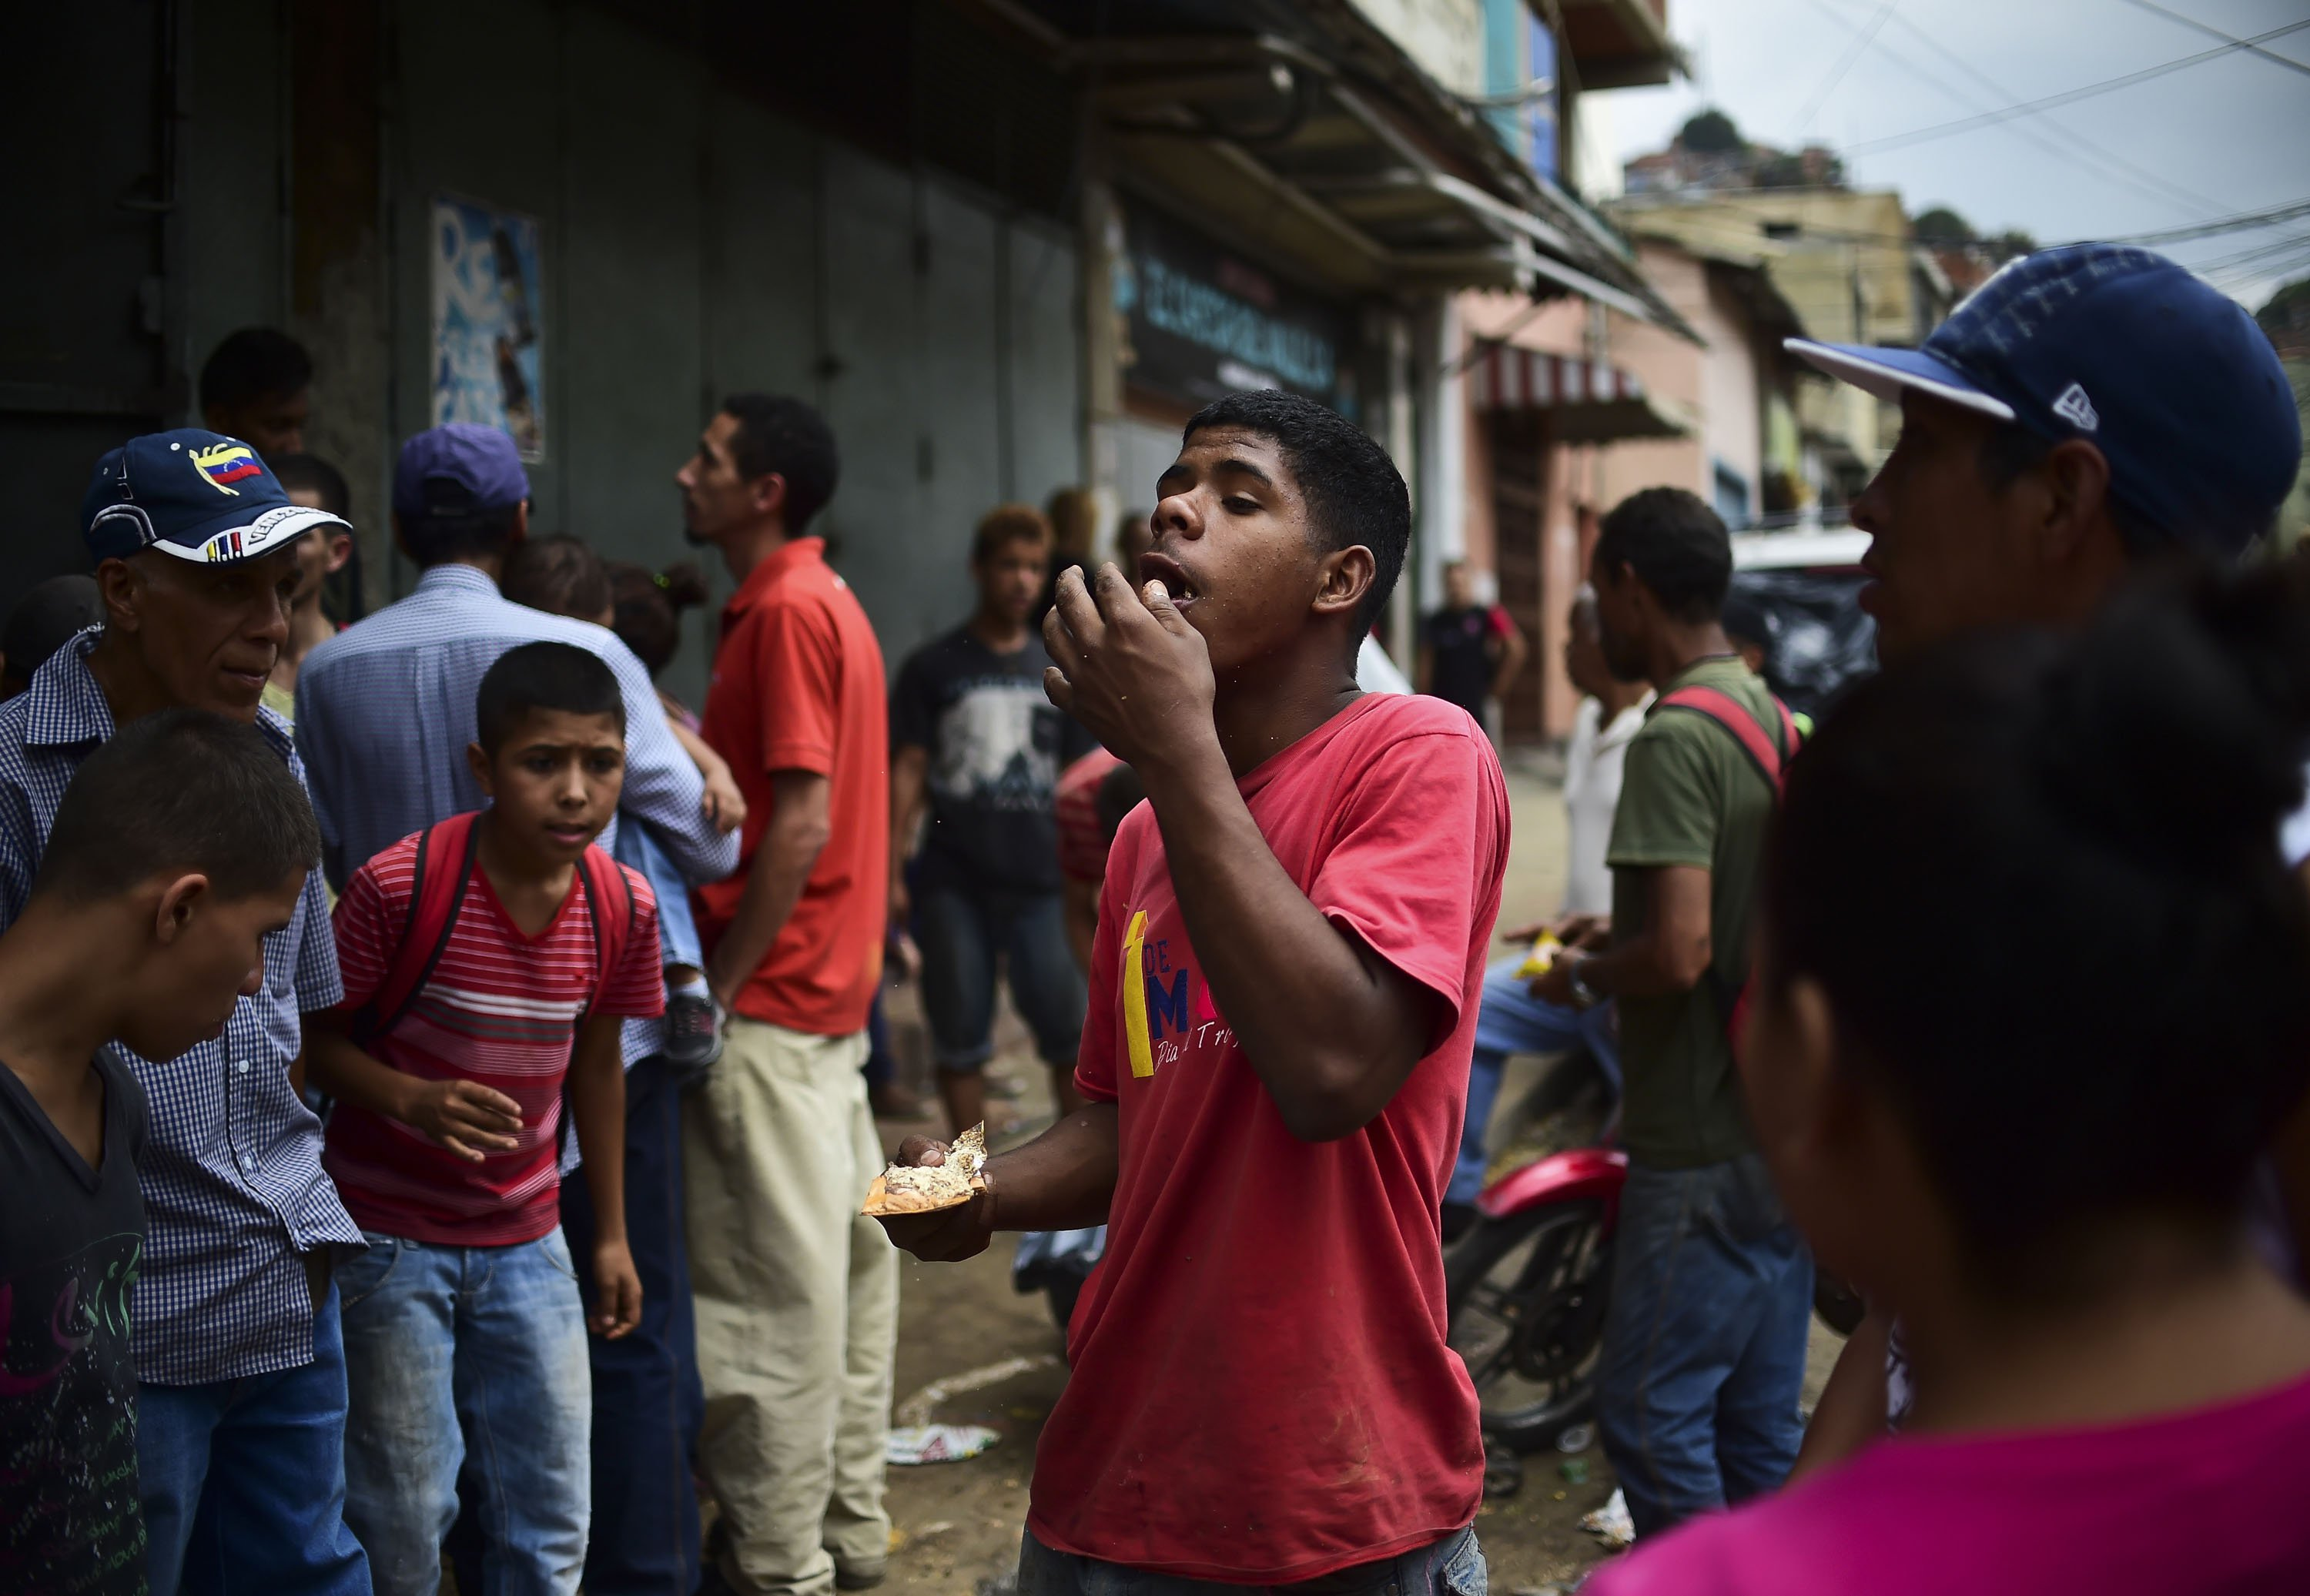 A man eats food he found outside a looted supermarket at El Valle neighborhood, in Caracas, on April 21, 2017, after demonstrations against the government of Venezuelan President Nicolas Maduro. Venezuela was rocked overnight by fresh violence in anti-government protests that have now claimed nine lives in three weeks, as an official reported Friday the fatal shooting of another man. / AFP PHOTO / RONALDO SCHEMIDT